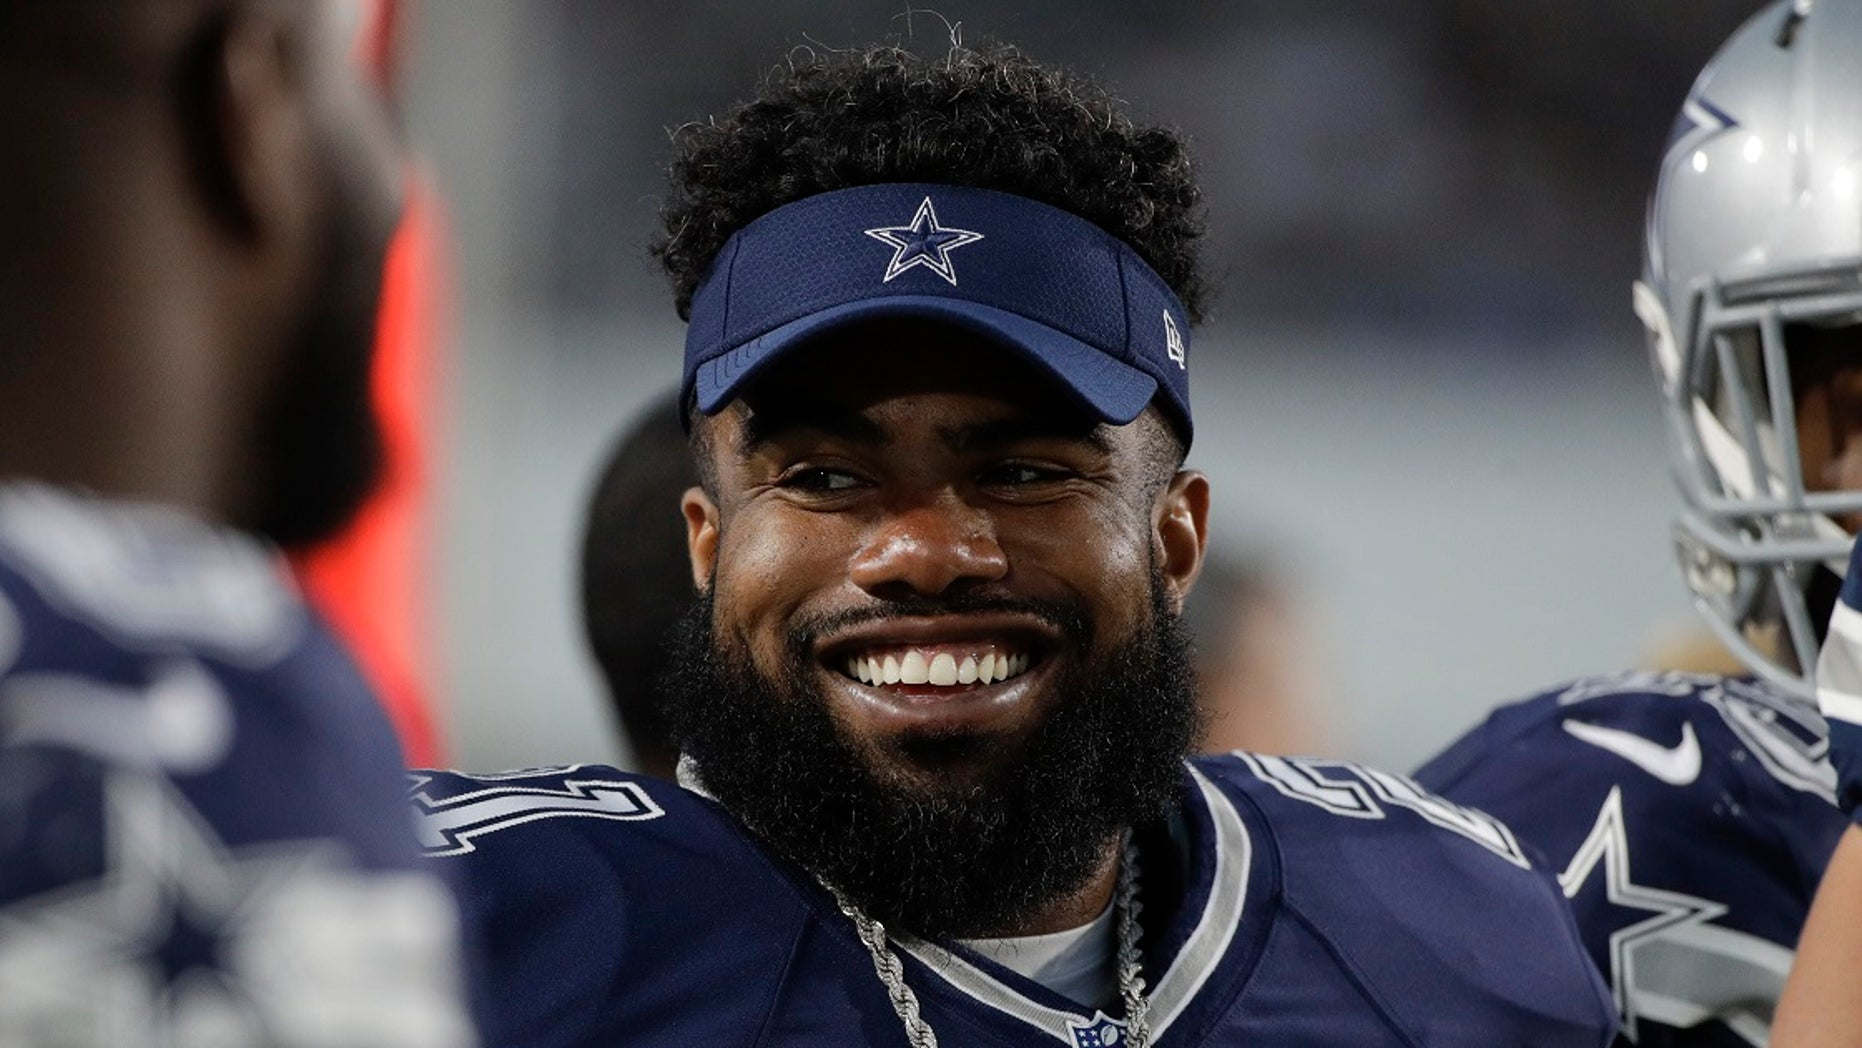 Dallas Cowboys running back Ezekiel Elliott plans to appeal his six game suspension.